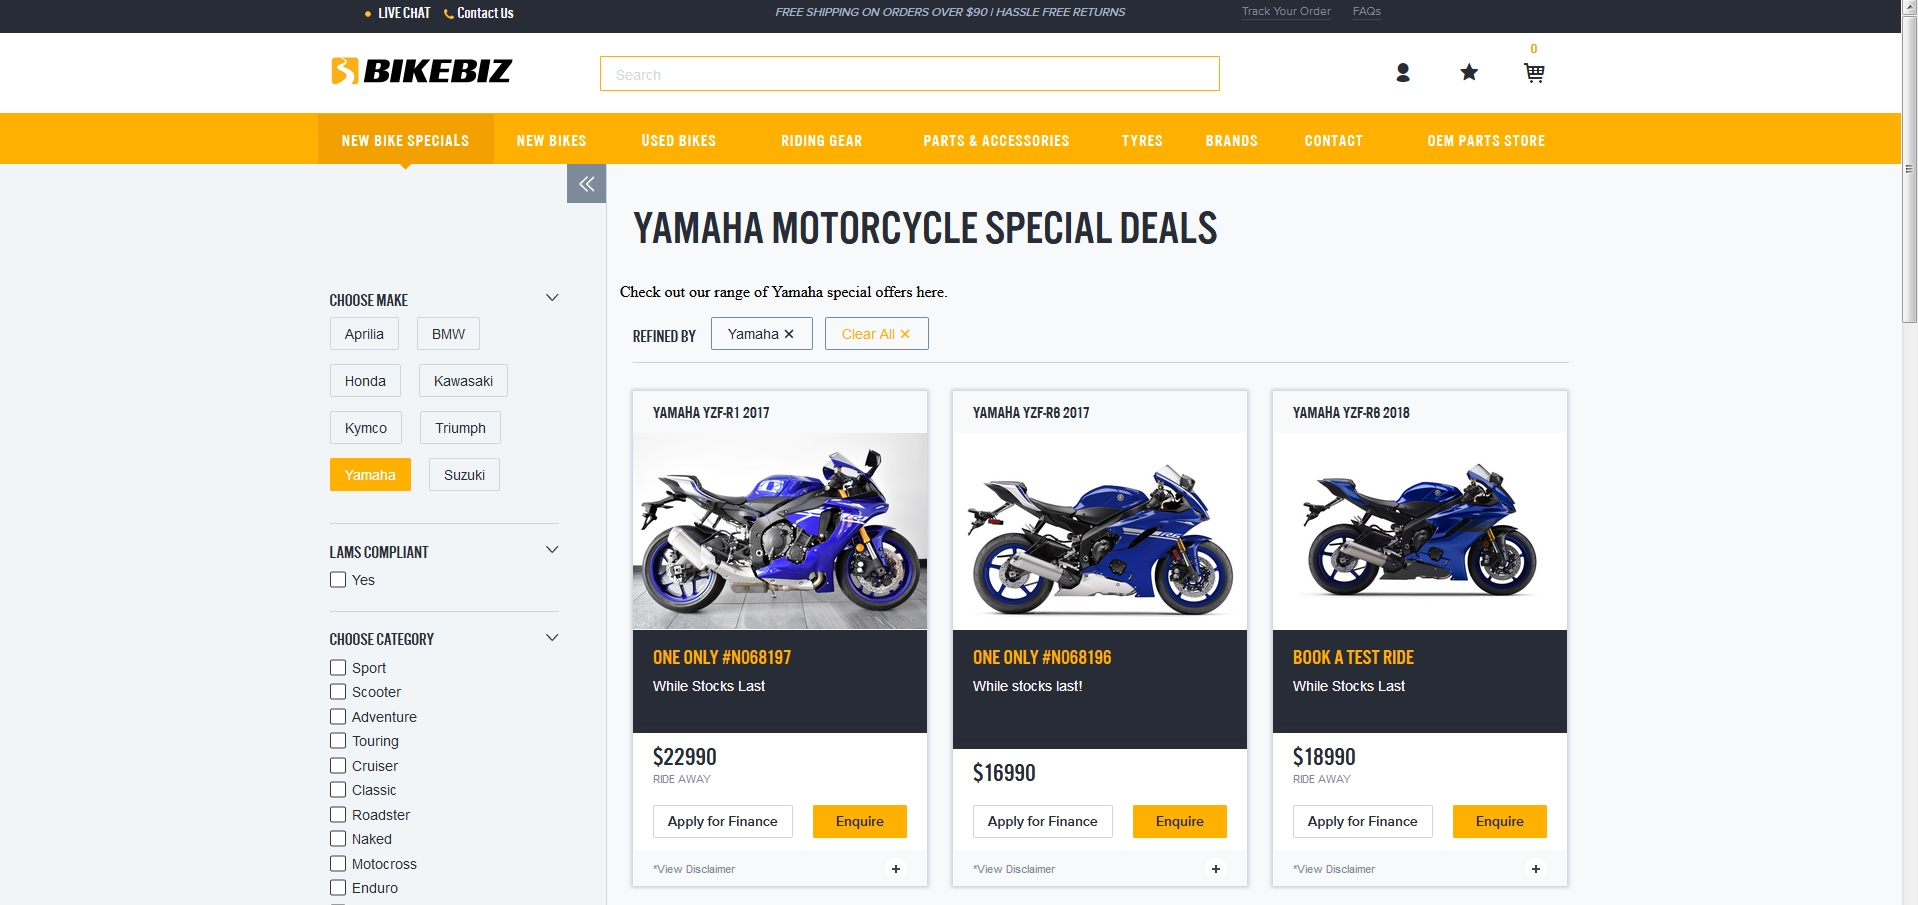 Emberjs implemented for Special Deals Bikebiz section